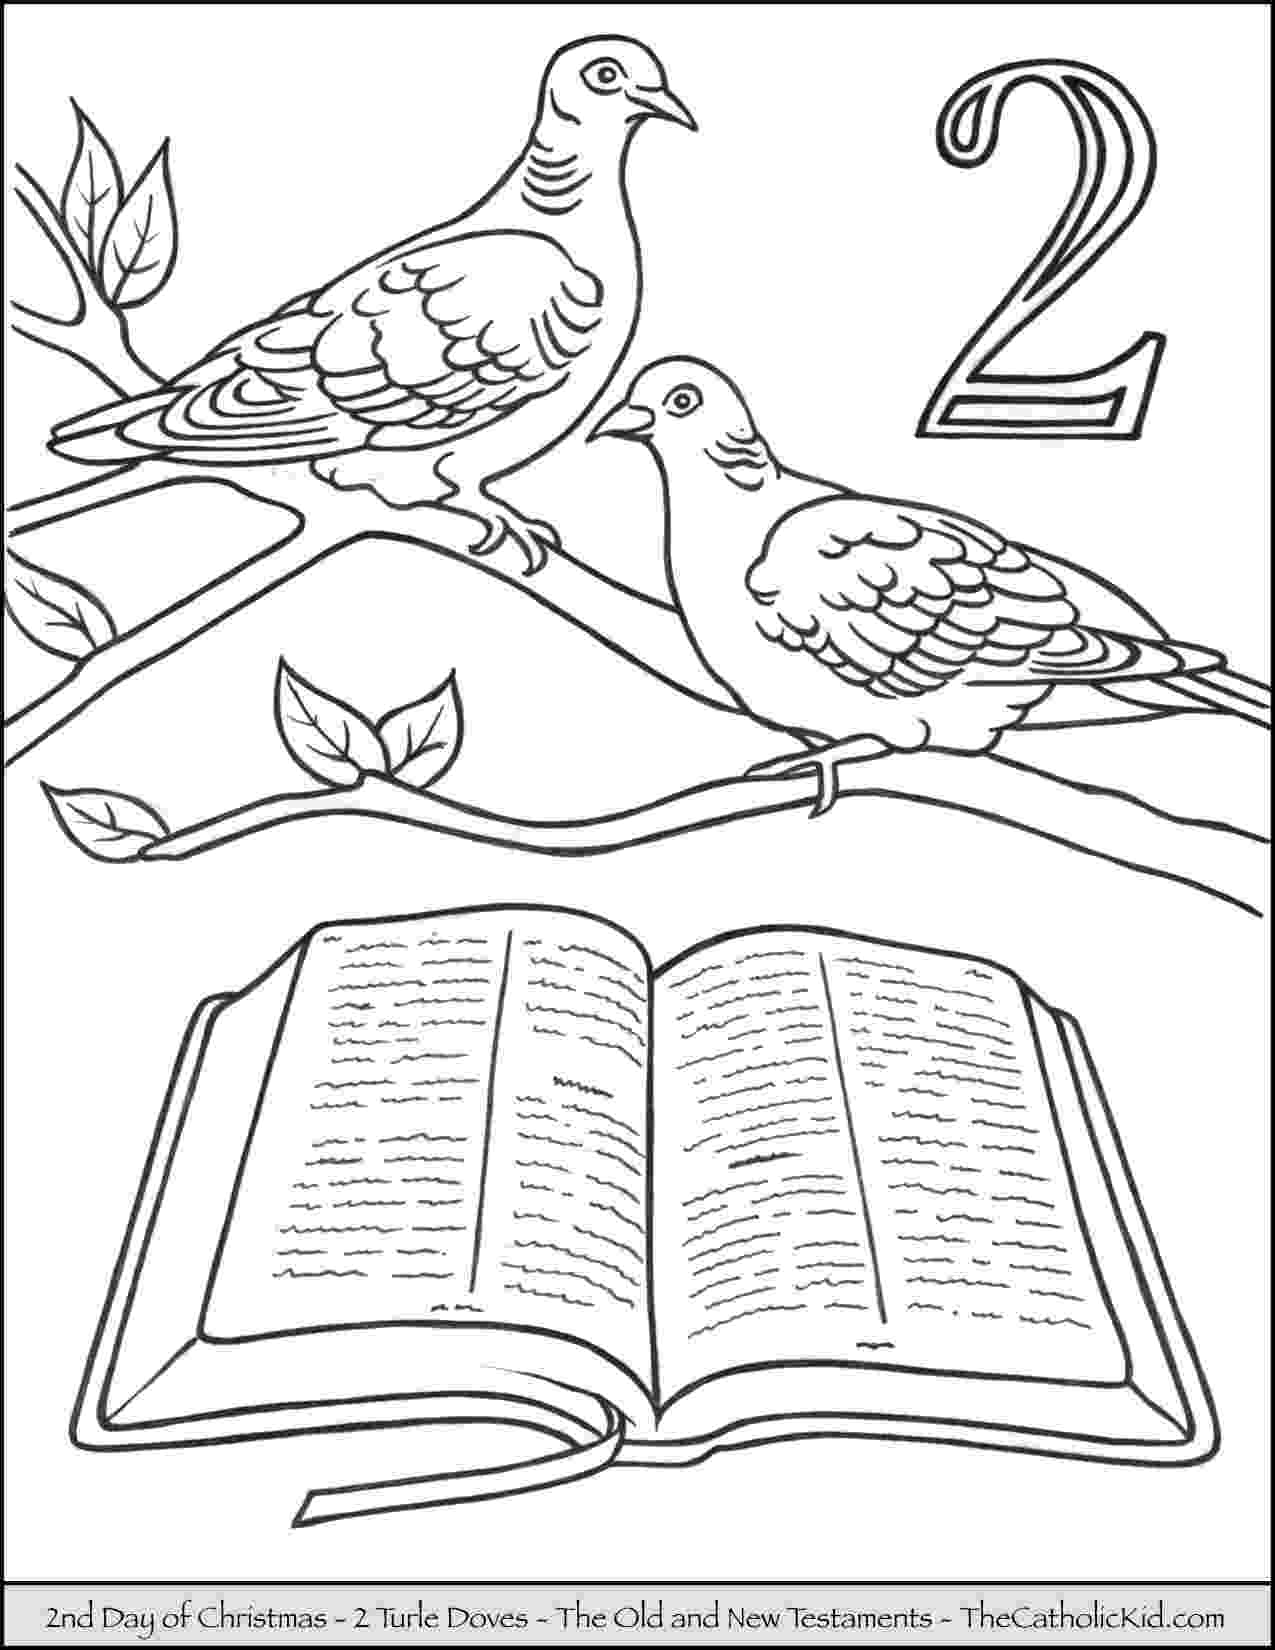 12 days of christmas coloring pages 12 days of christmas coloring pages thecatholickidcom coloring days of pages christmas 12